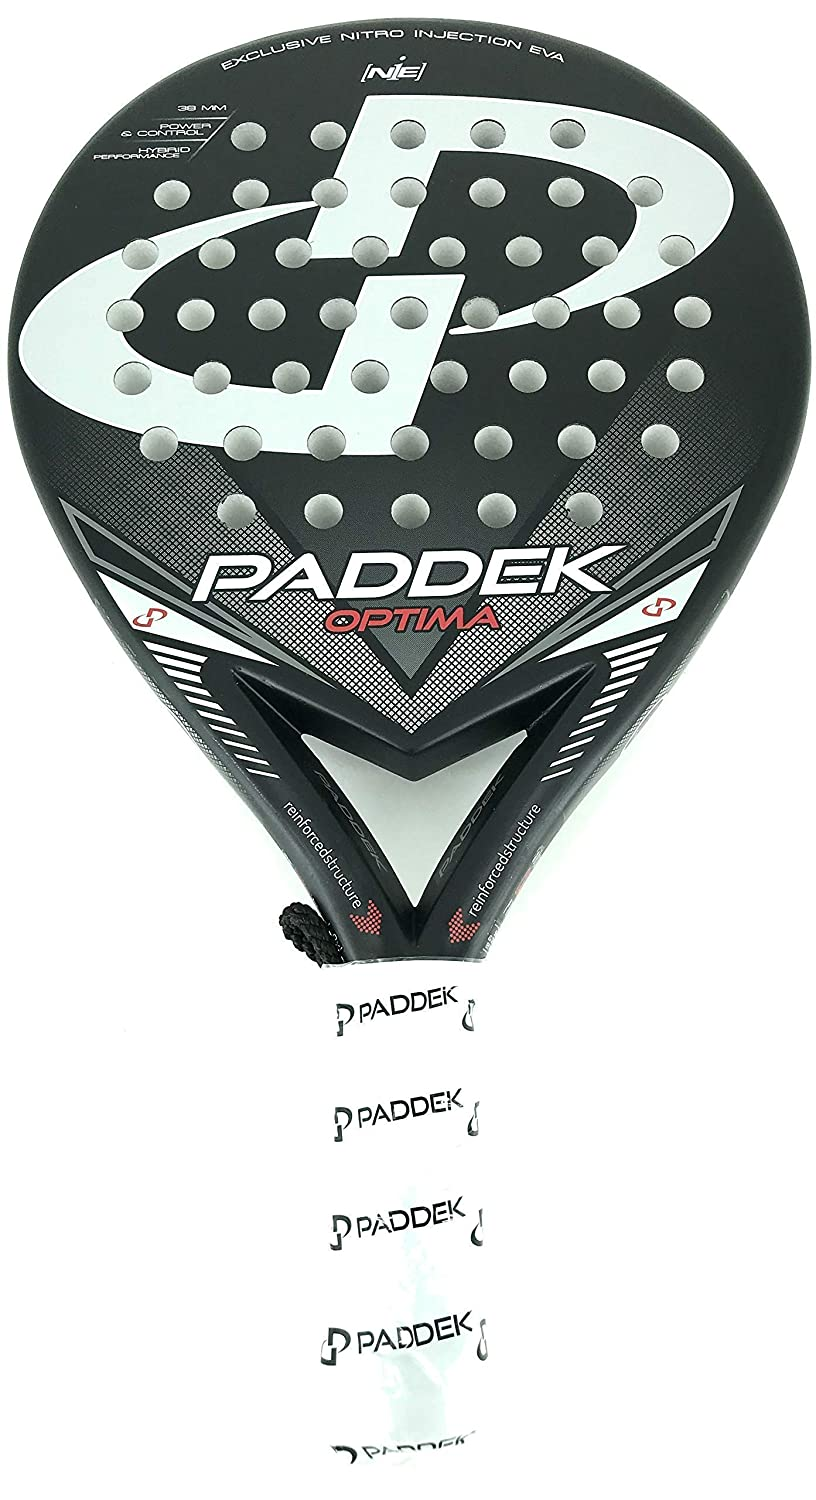 Pala de pádel Paddek - Optima Absolute Carbon: Amazon.es ...